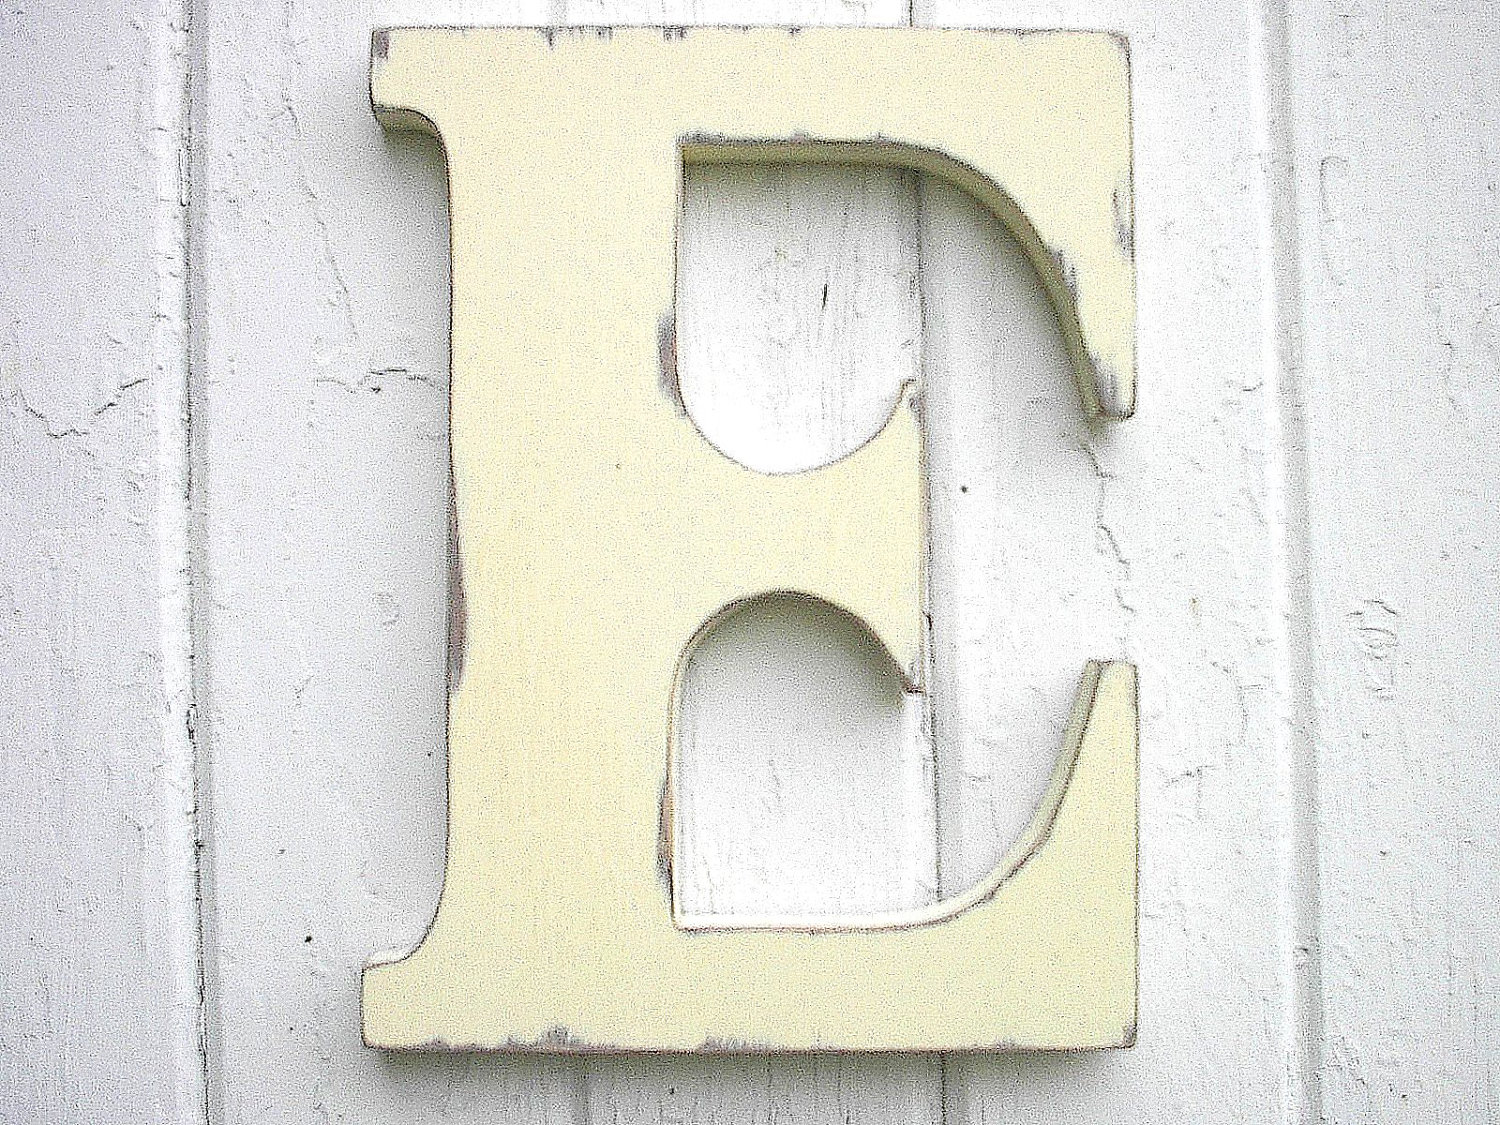 Letter E Wall Decor Wooden Letters Initial E 12 Inch Antique White Kids Wall Decor